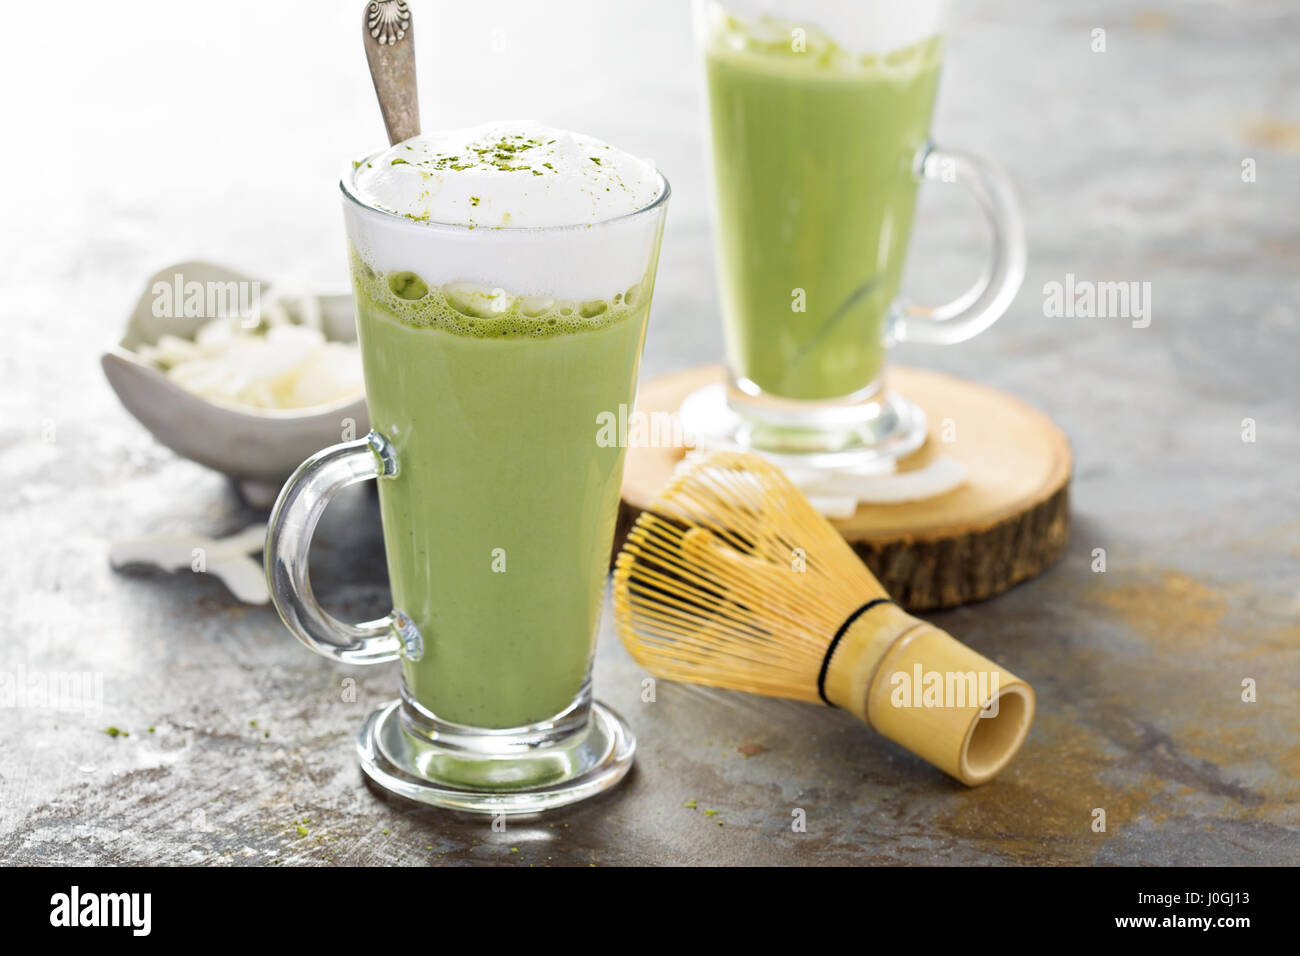 Matcha coconut latte in tall glasses - Stock Image